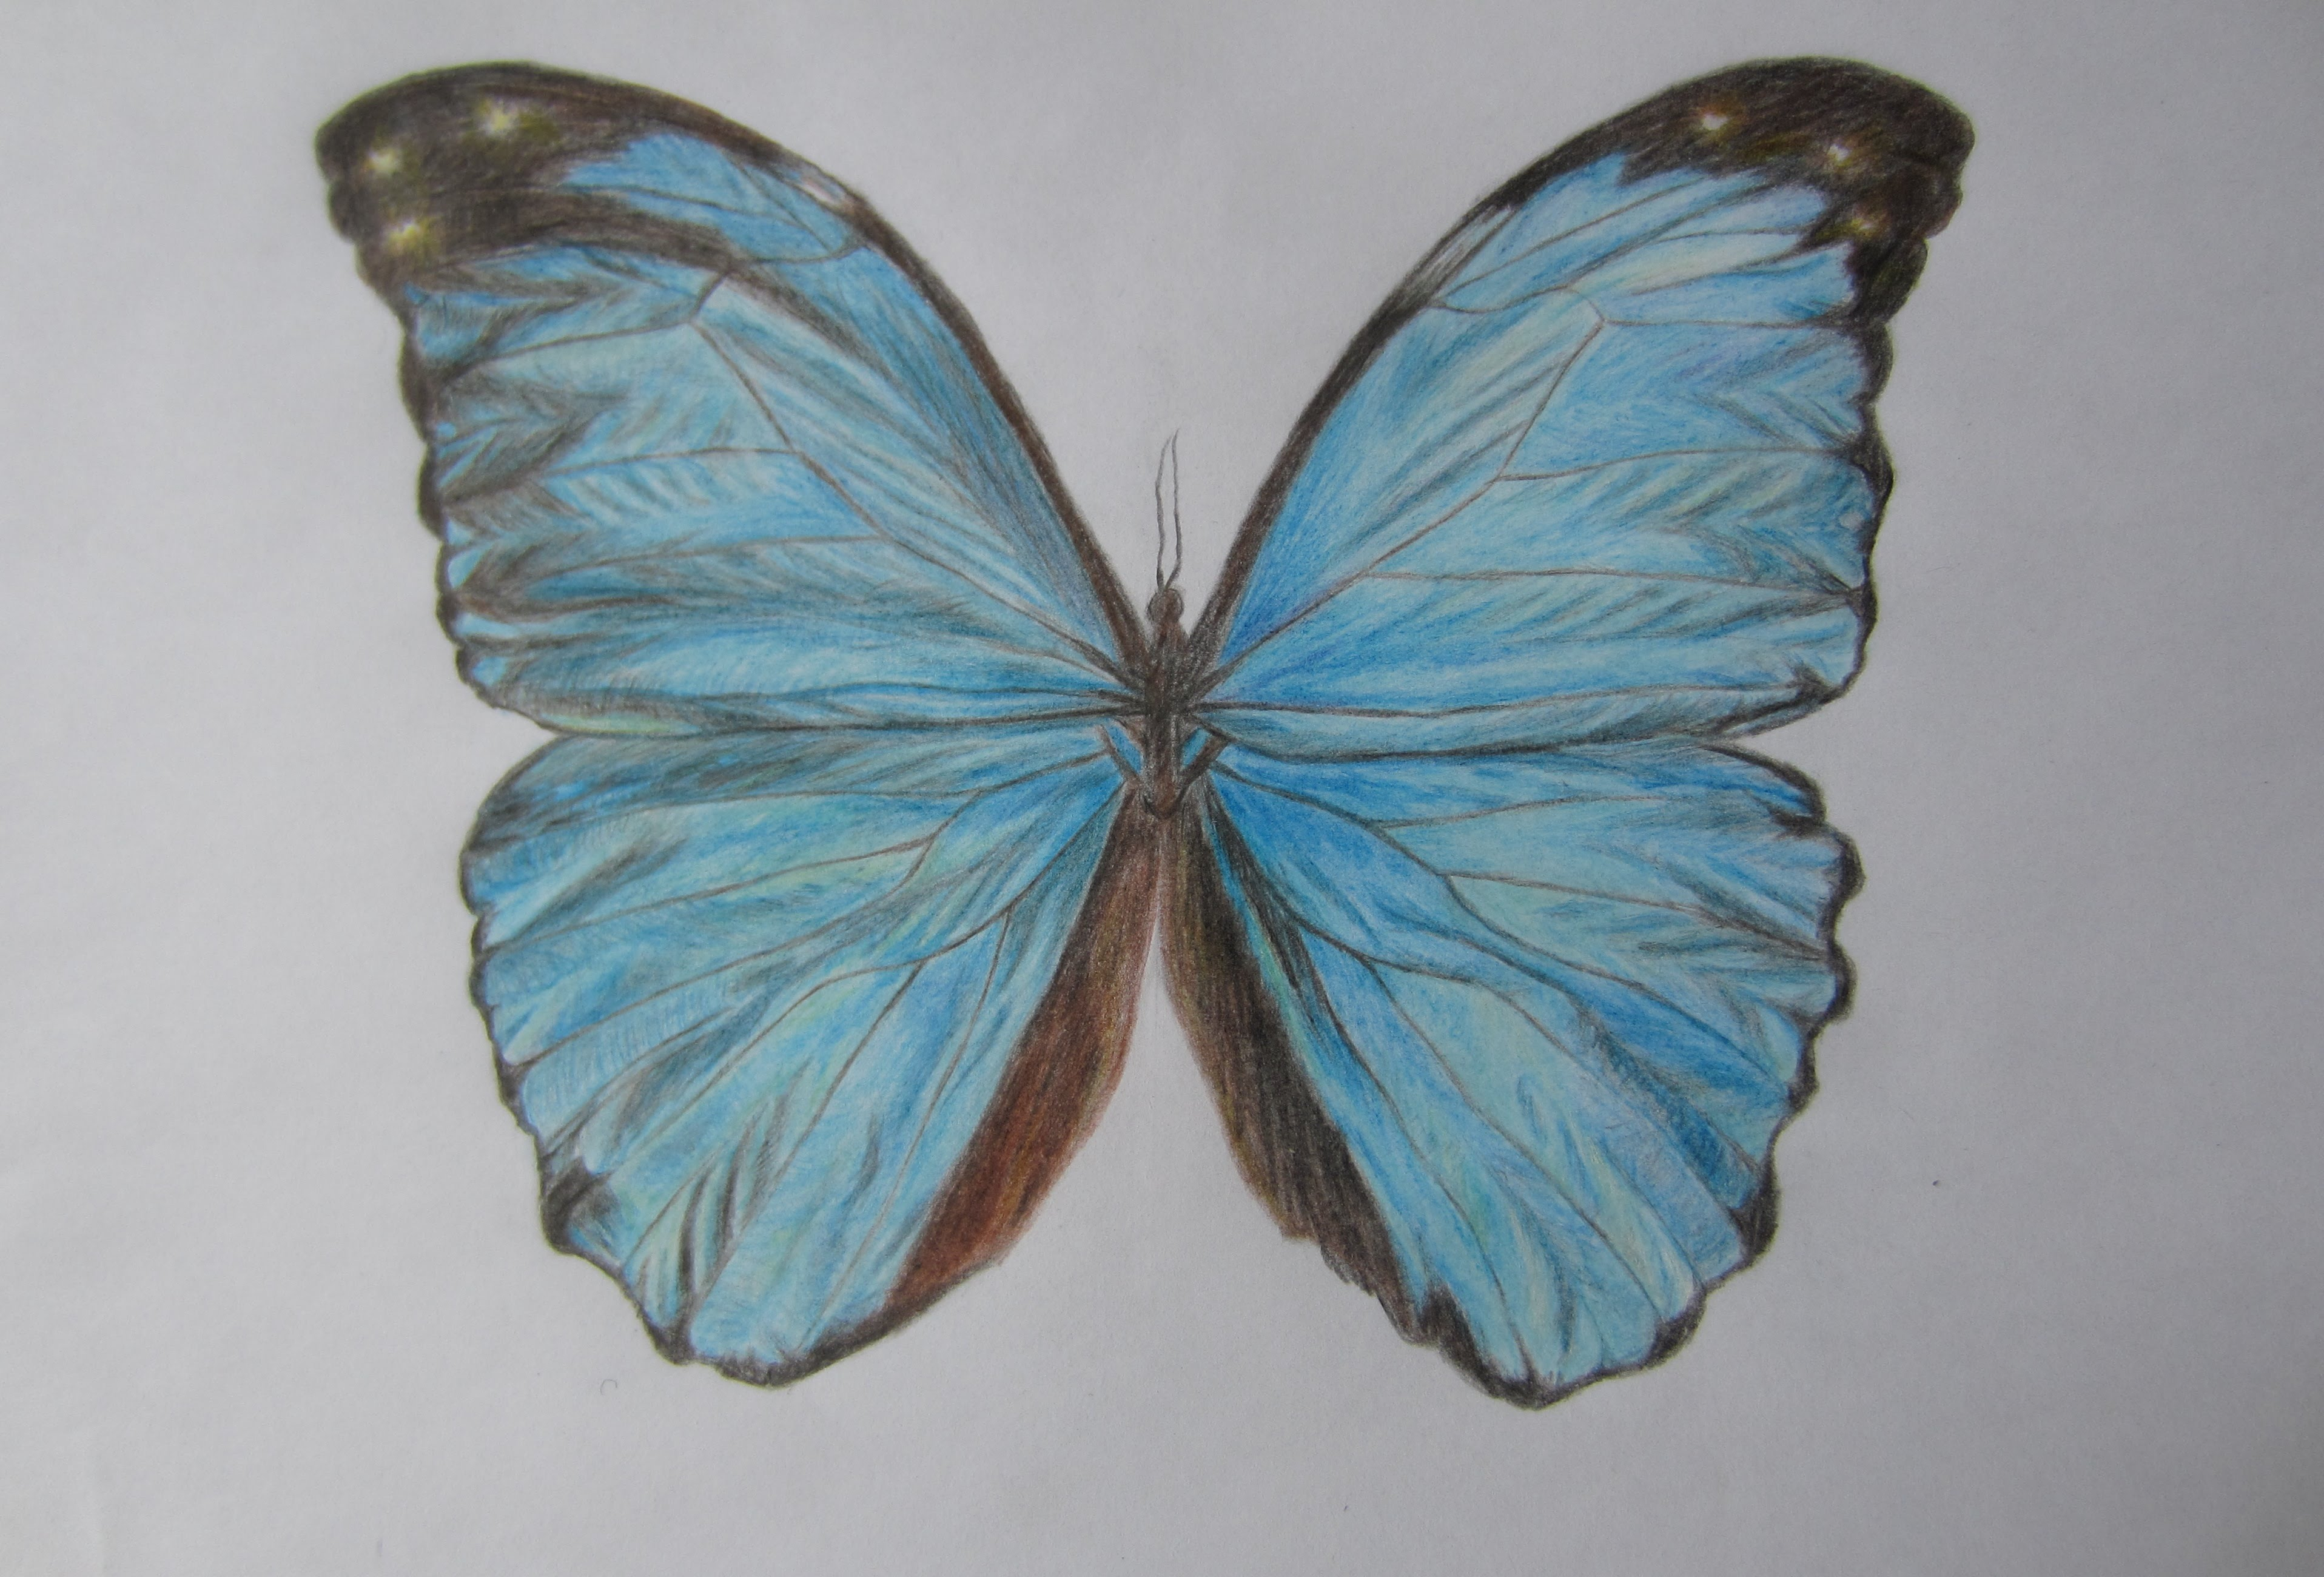 Drawn butterfly blue butterfly With color blue YouTube color